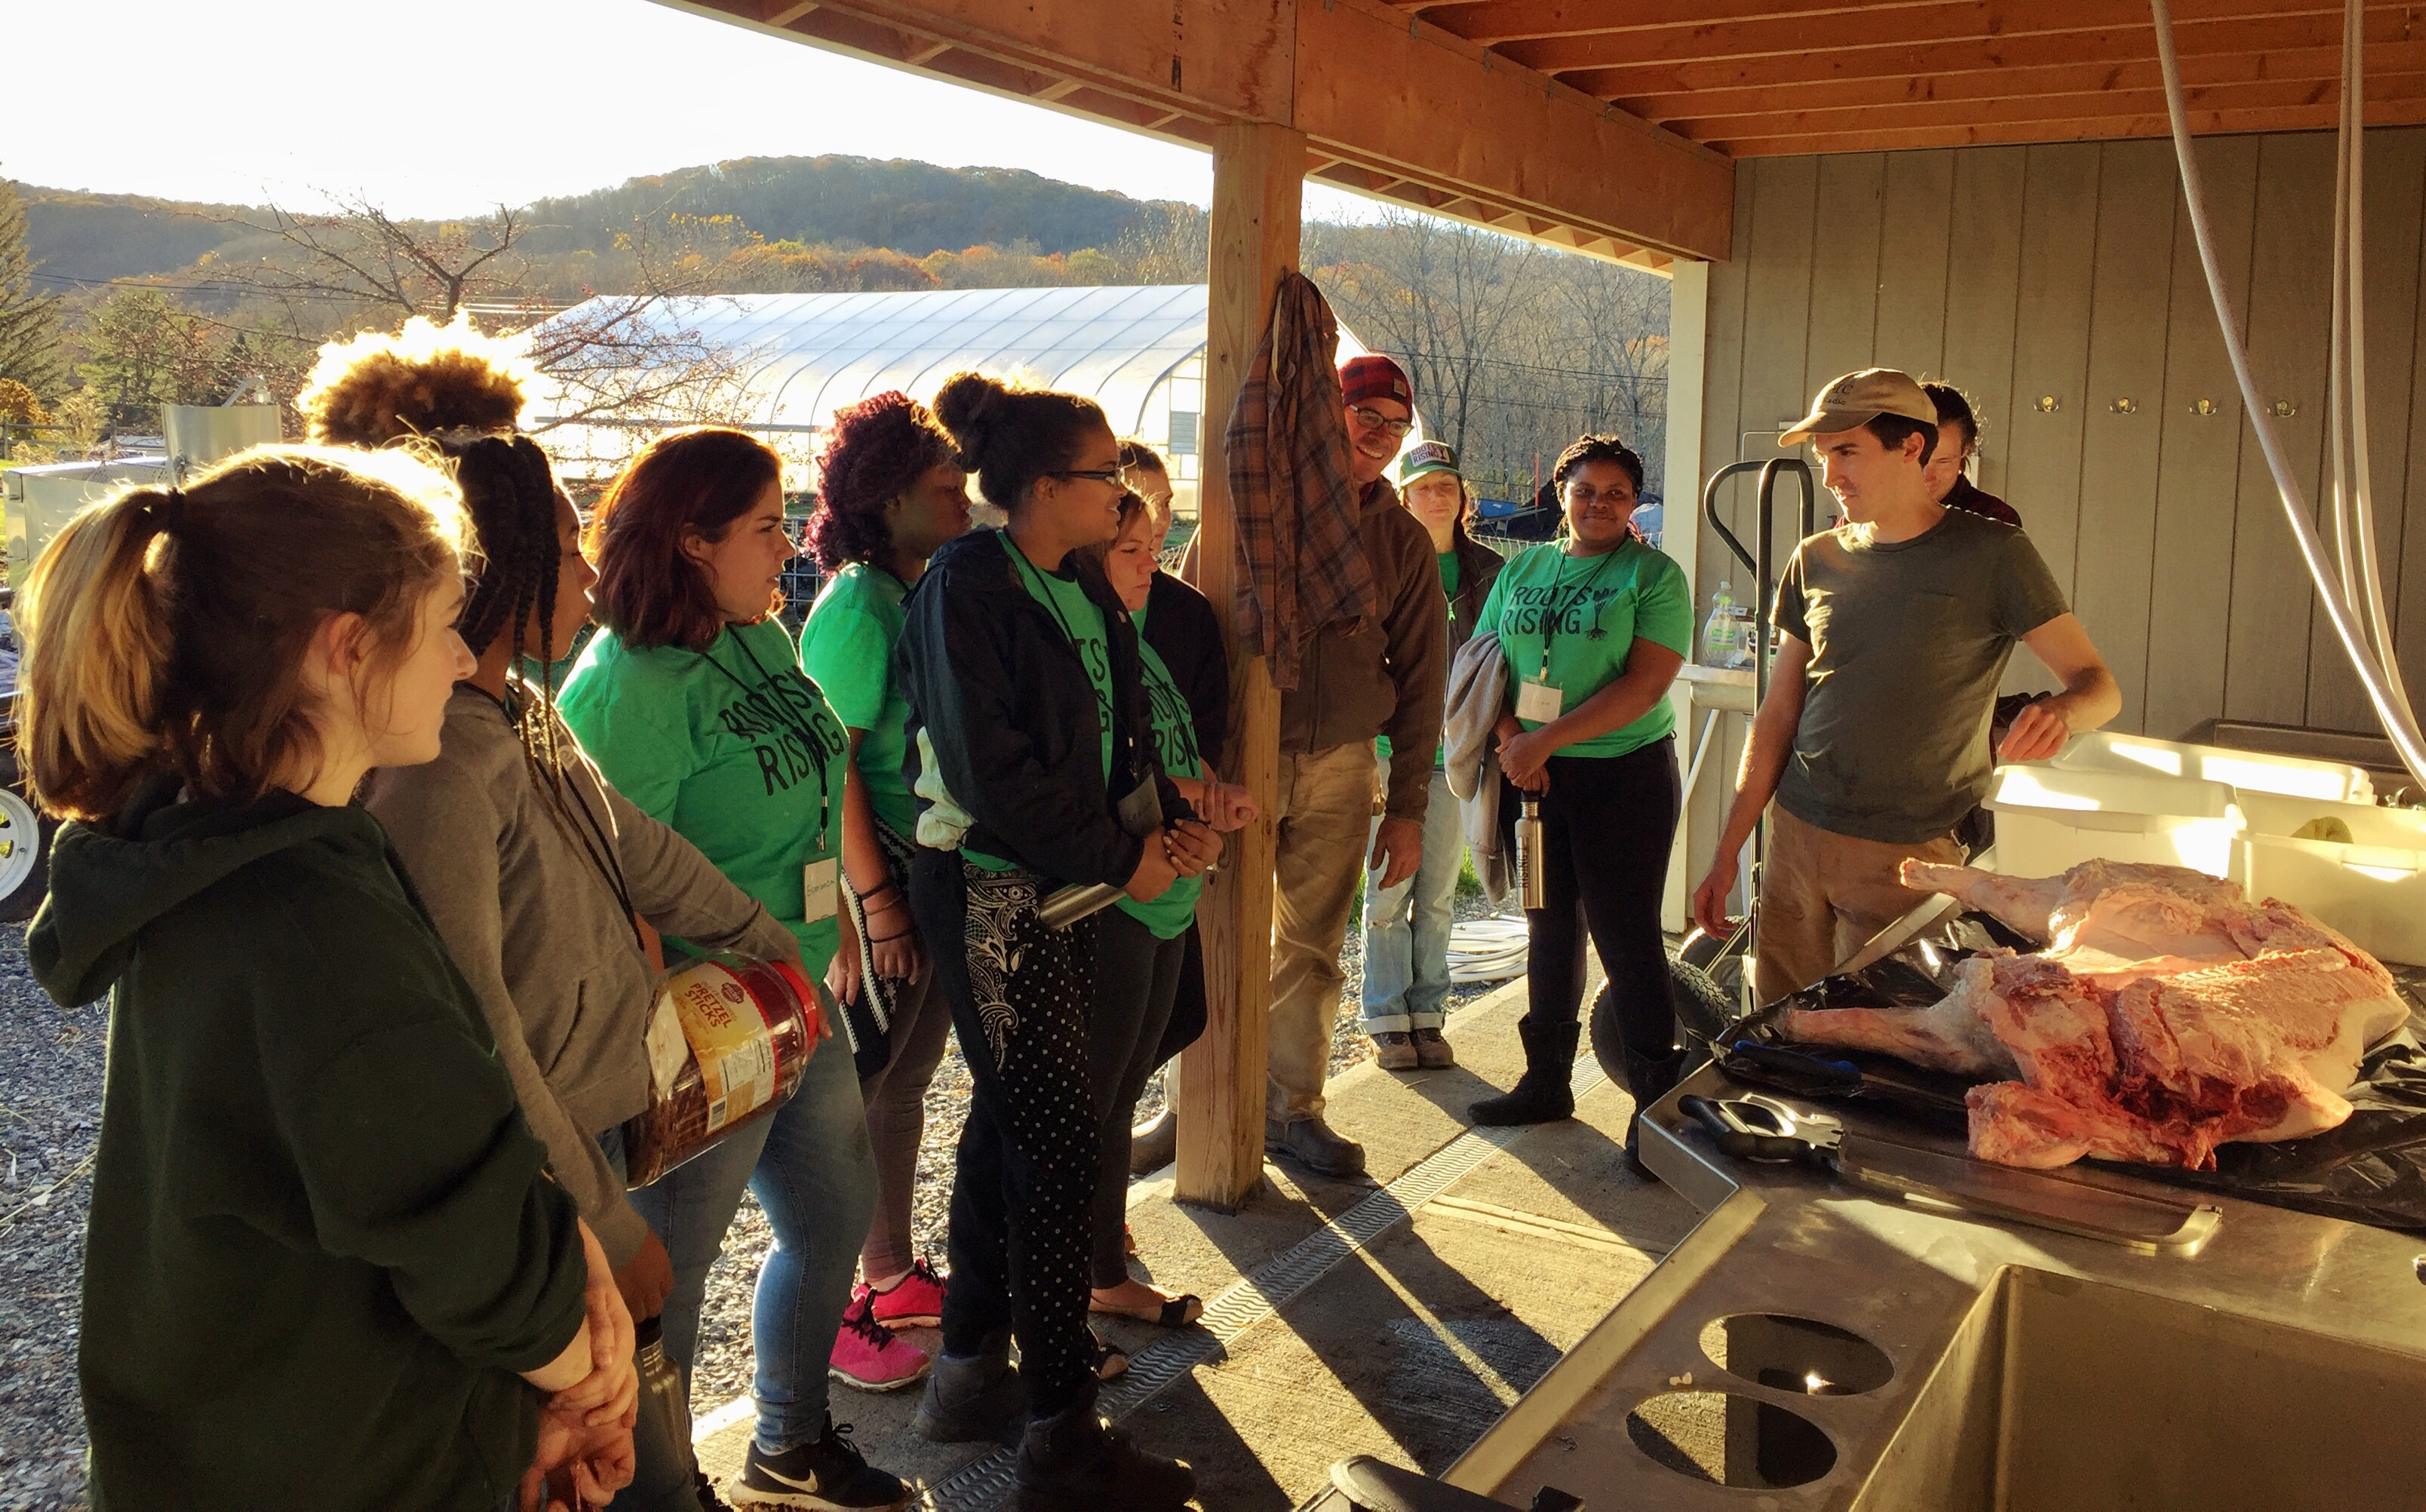 The Crew learns about pig butchery.